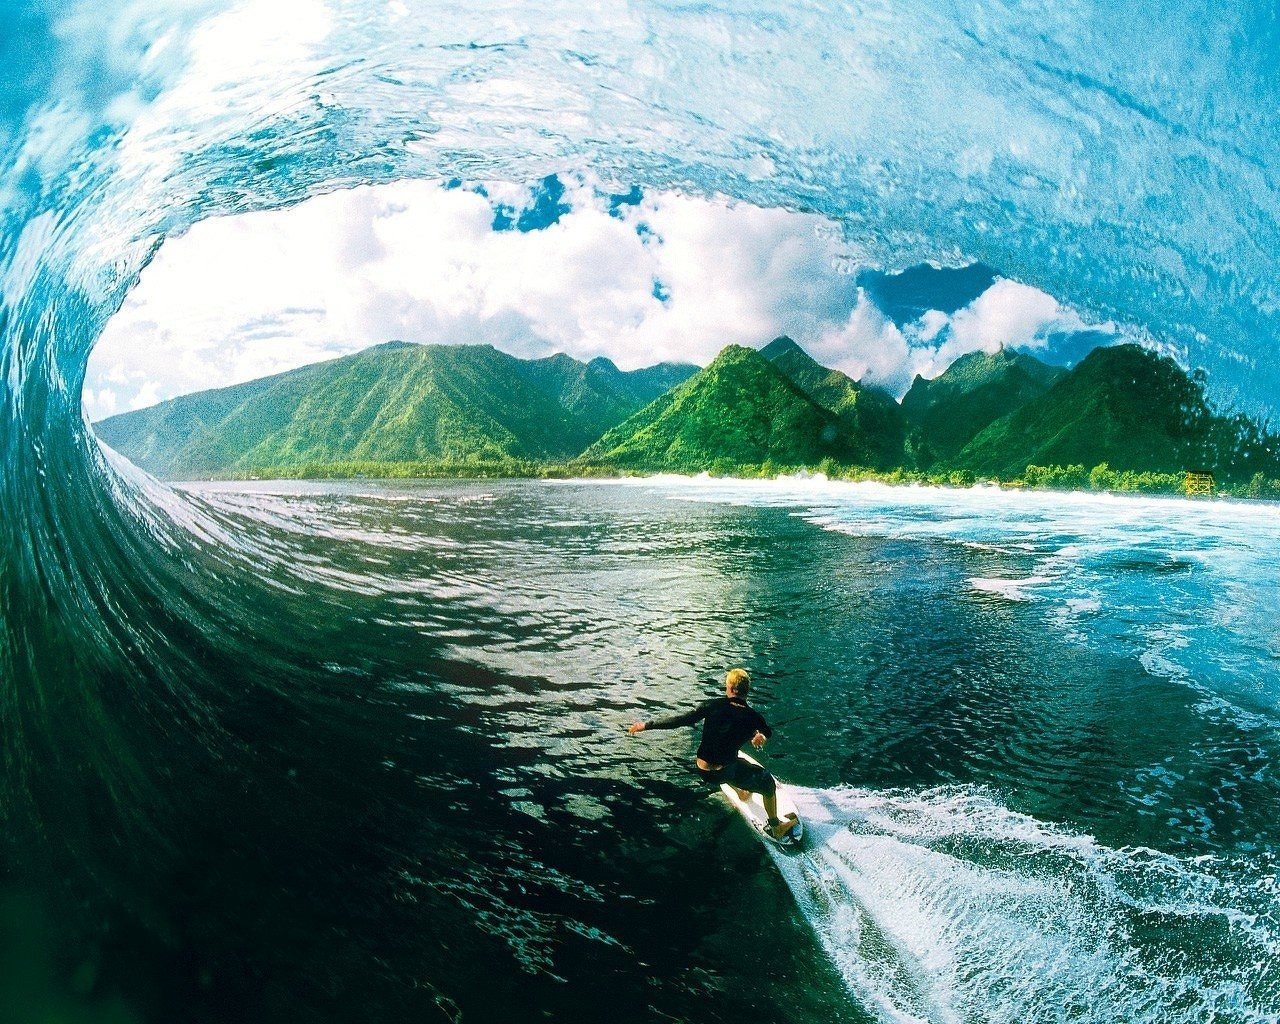 14 Cool Surfing Wallpapers | Surf Pictures and Videos